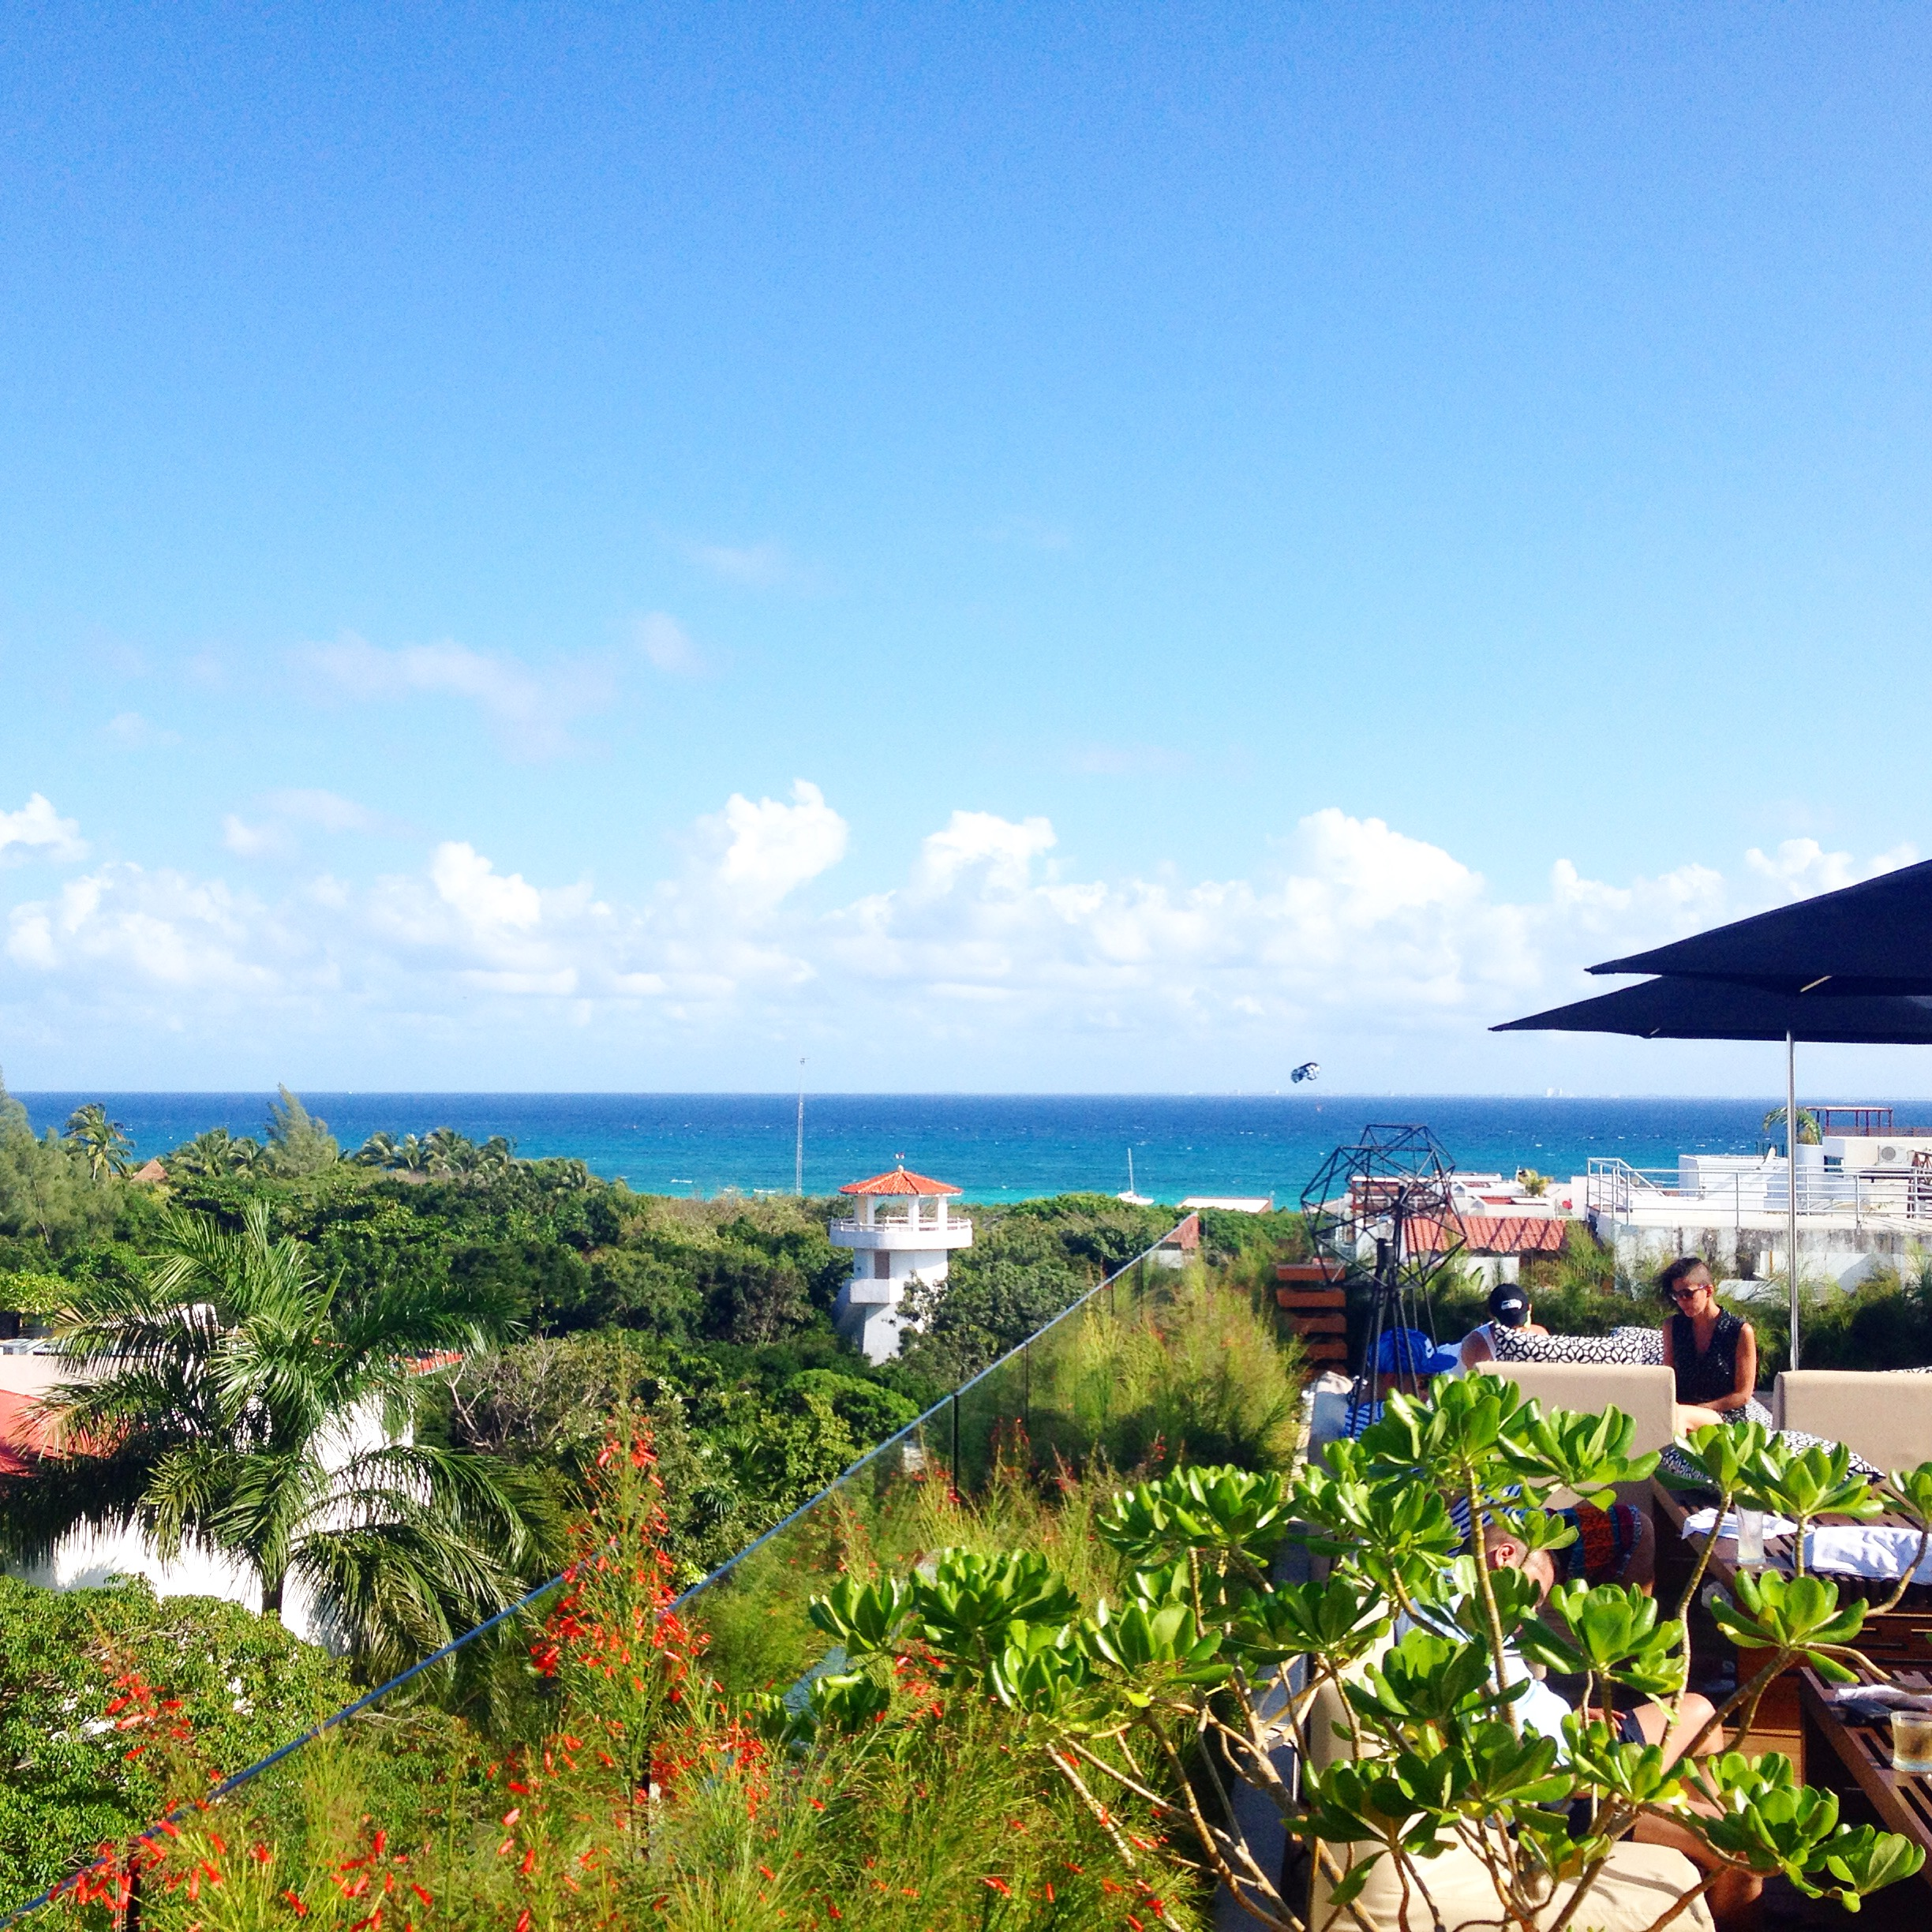 The view from our hotel rooftop in Playa del Carmen. We stayed at the beautiful Hotel Cacao.